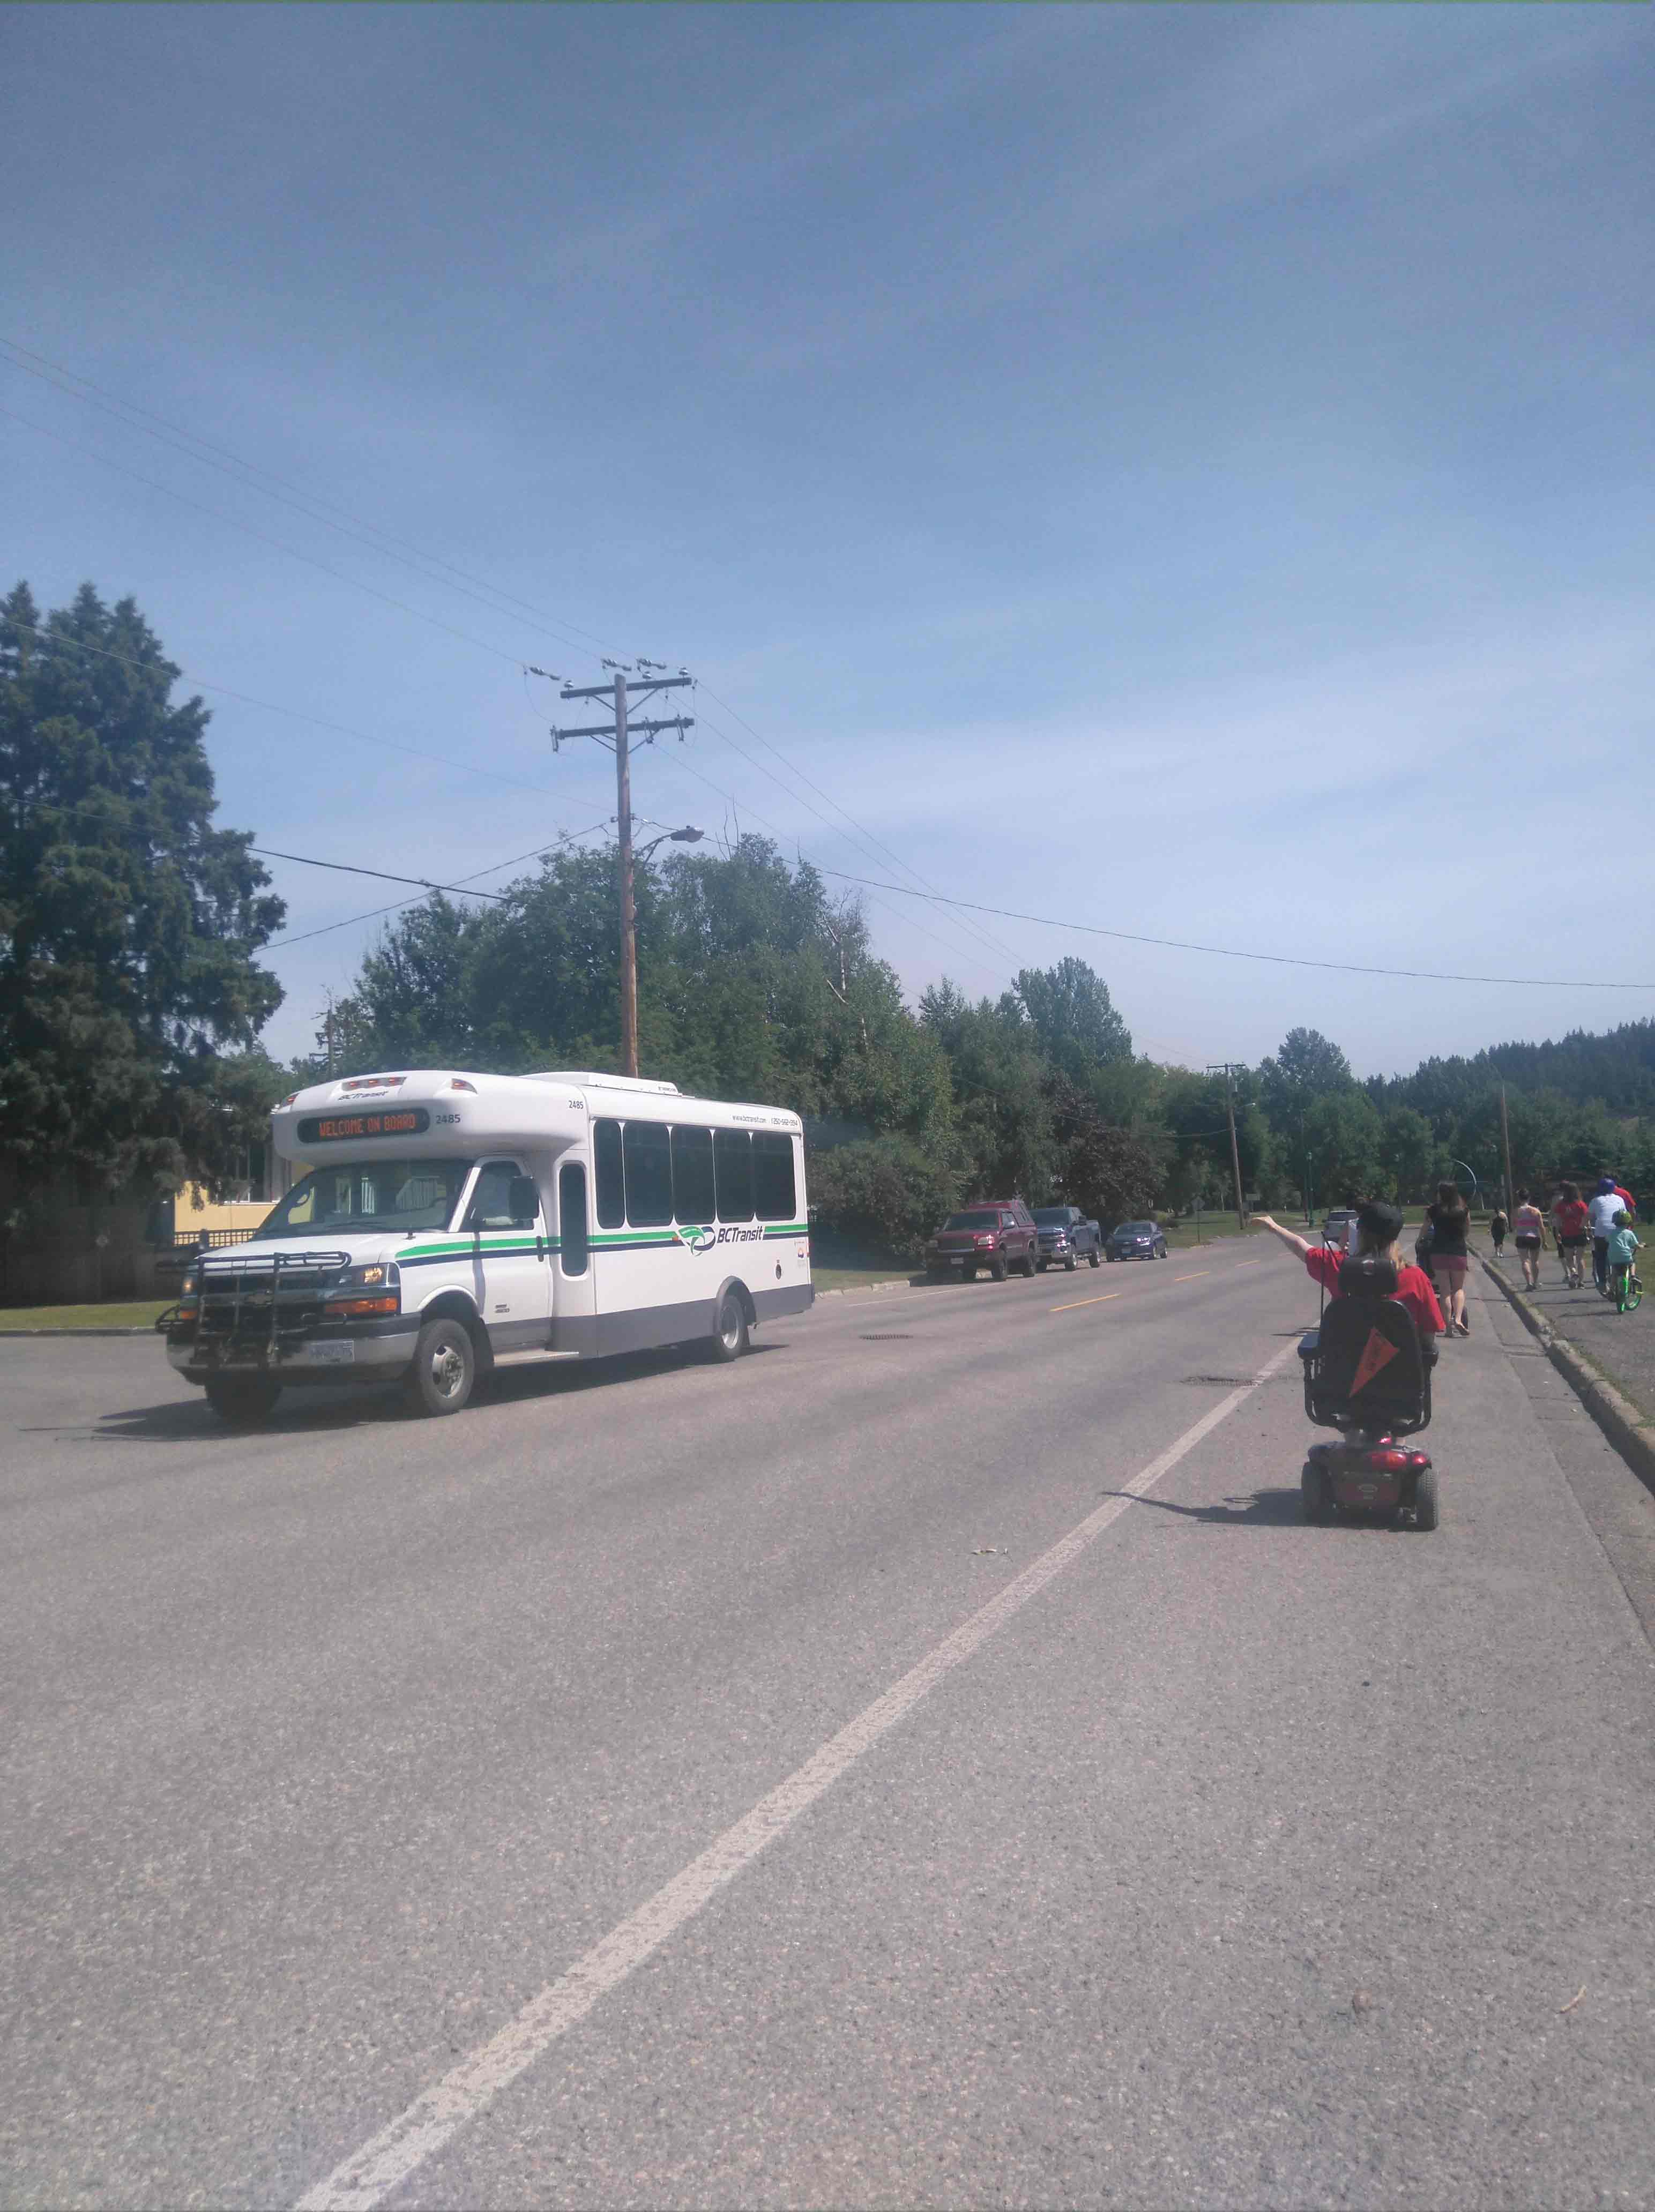 Passing the MS walk June 2016 in Prince George BC